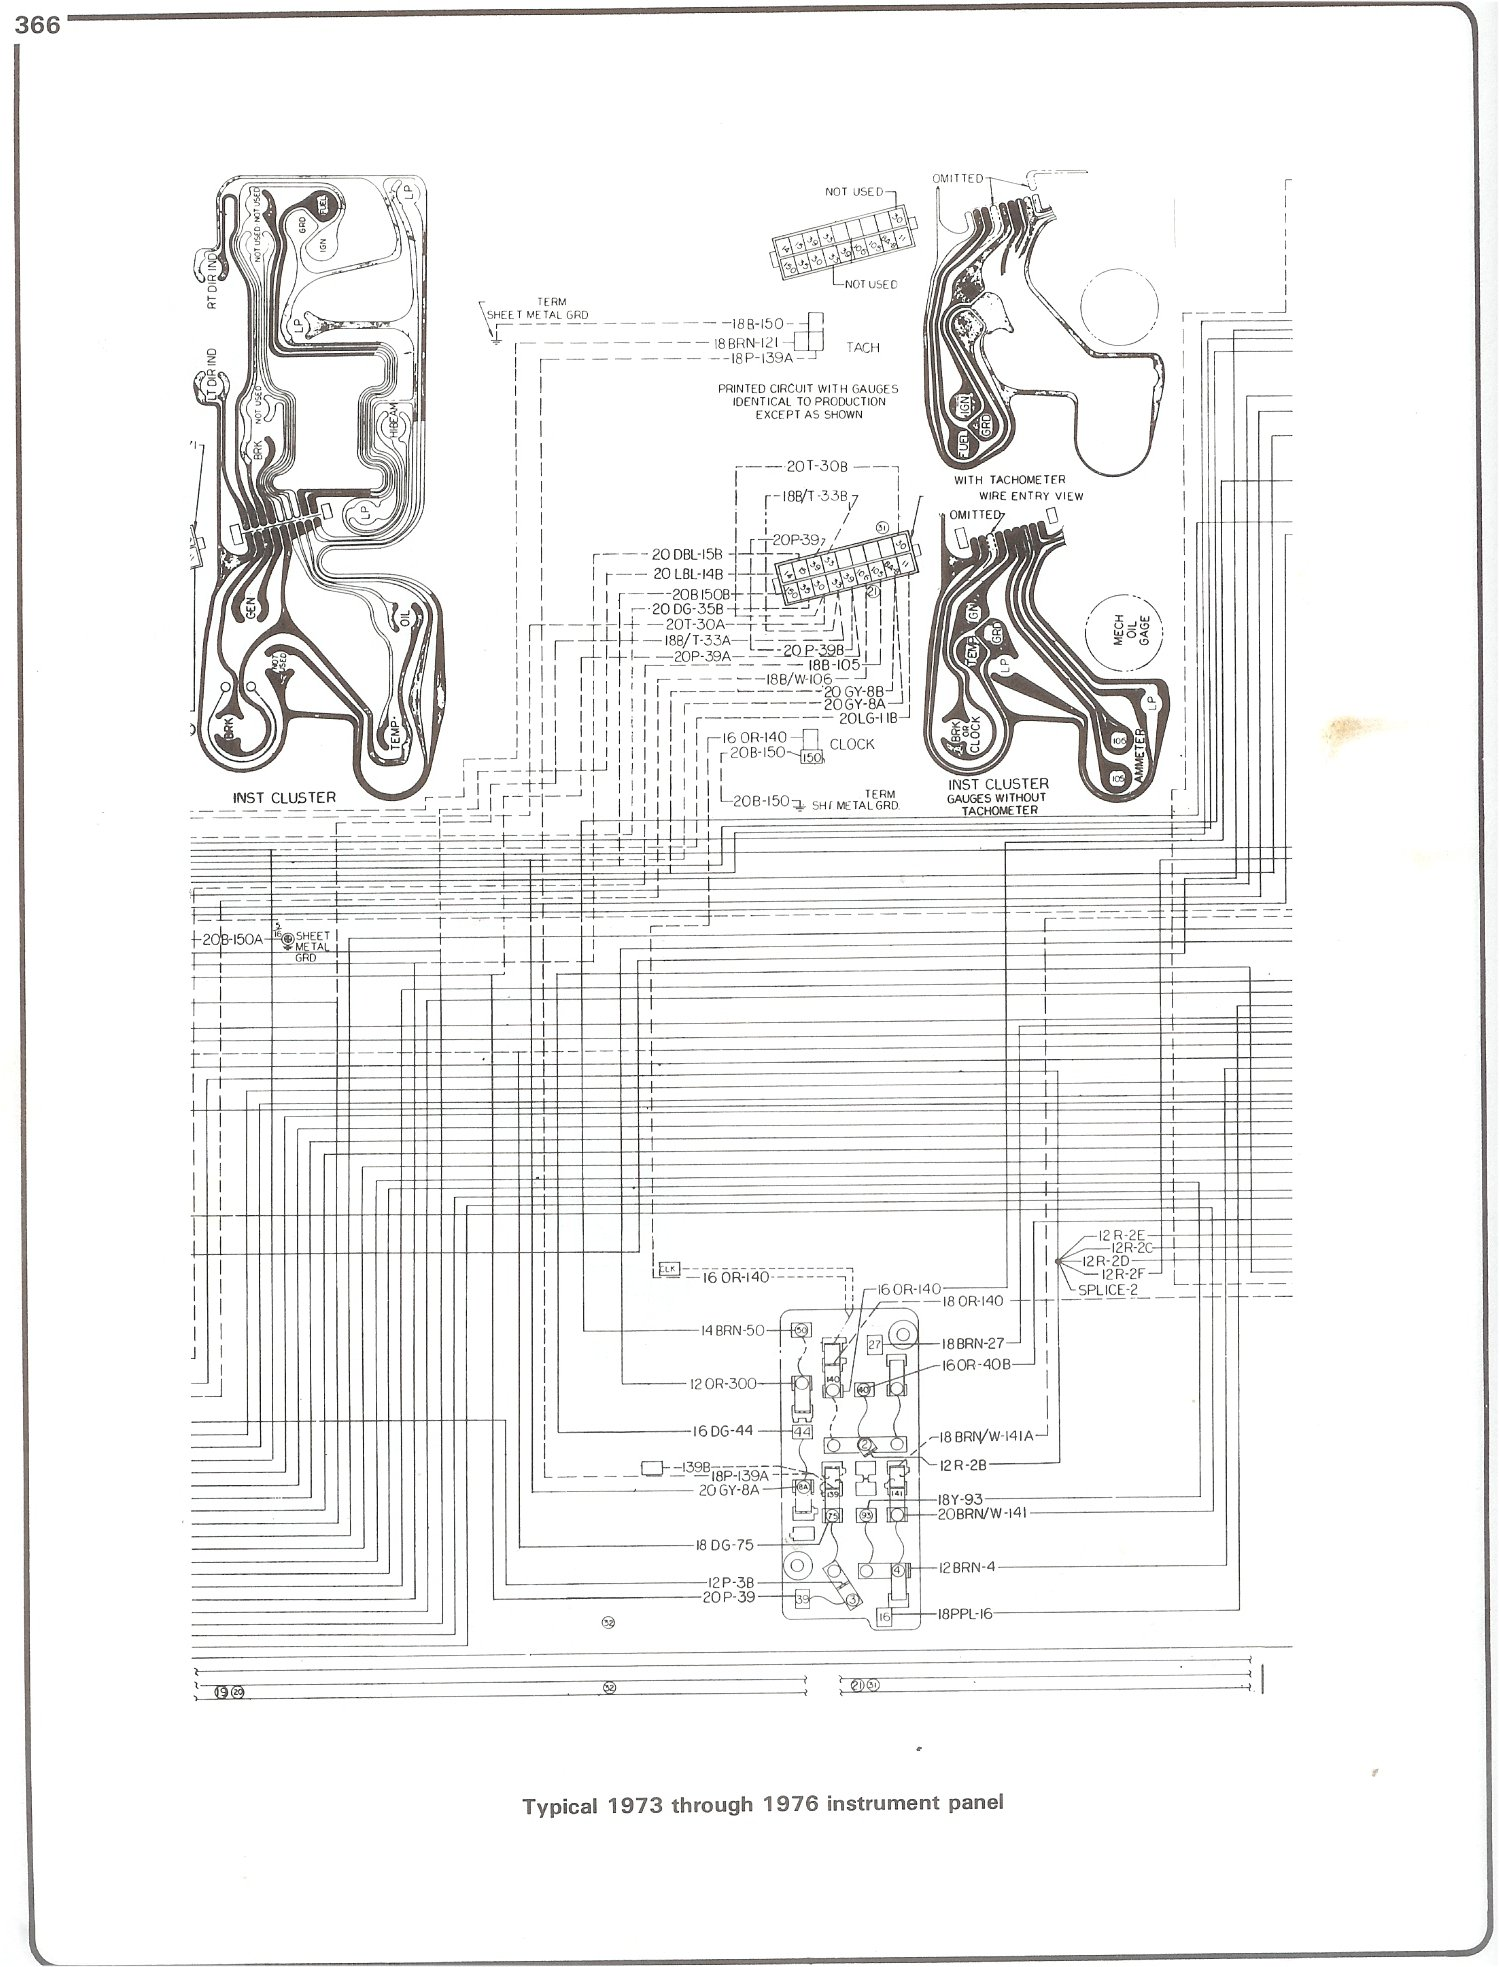 complete 73 87 wiring diagrams rh forum 73 87chevytrucks com Chevy S10 Air Conditioning Wiring Diagram Chevy S10 Air Conditioning Wiring Diagram